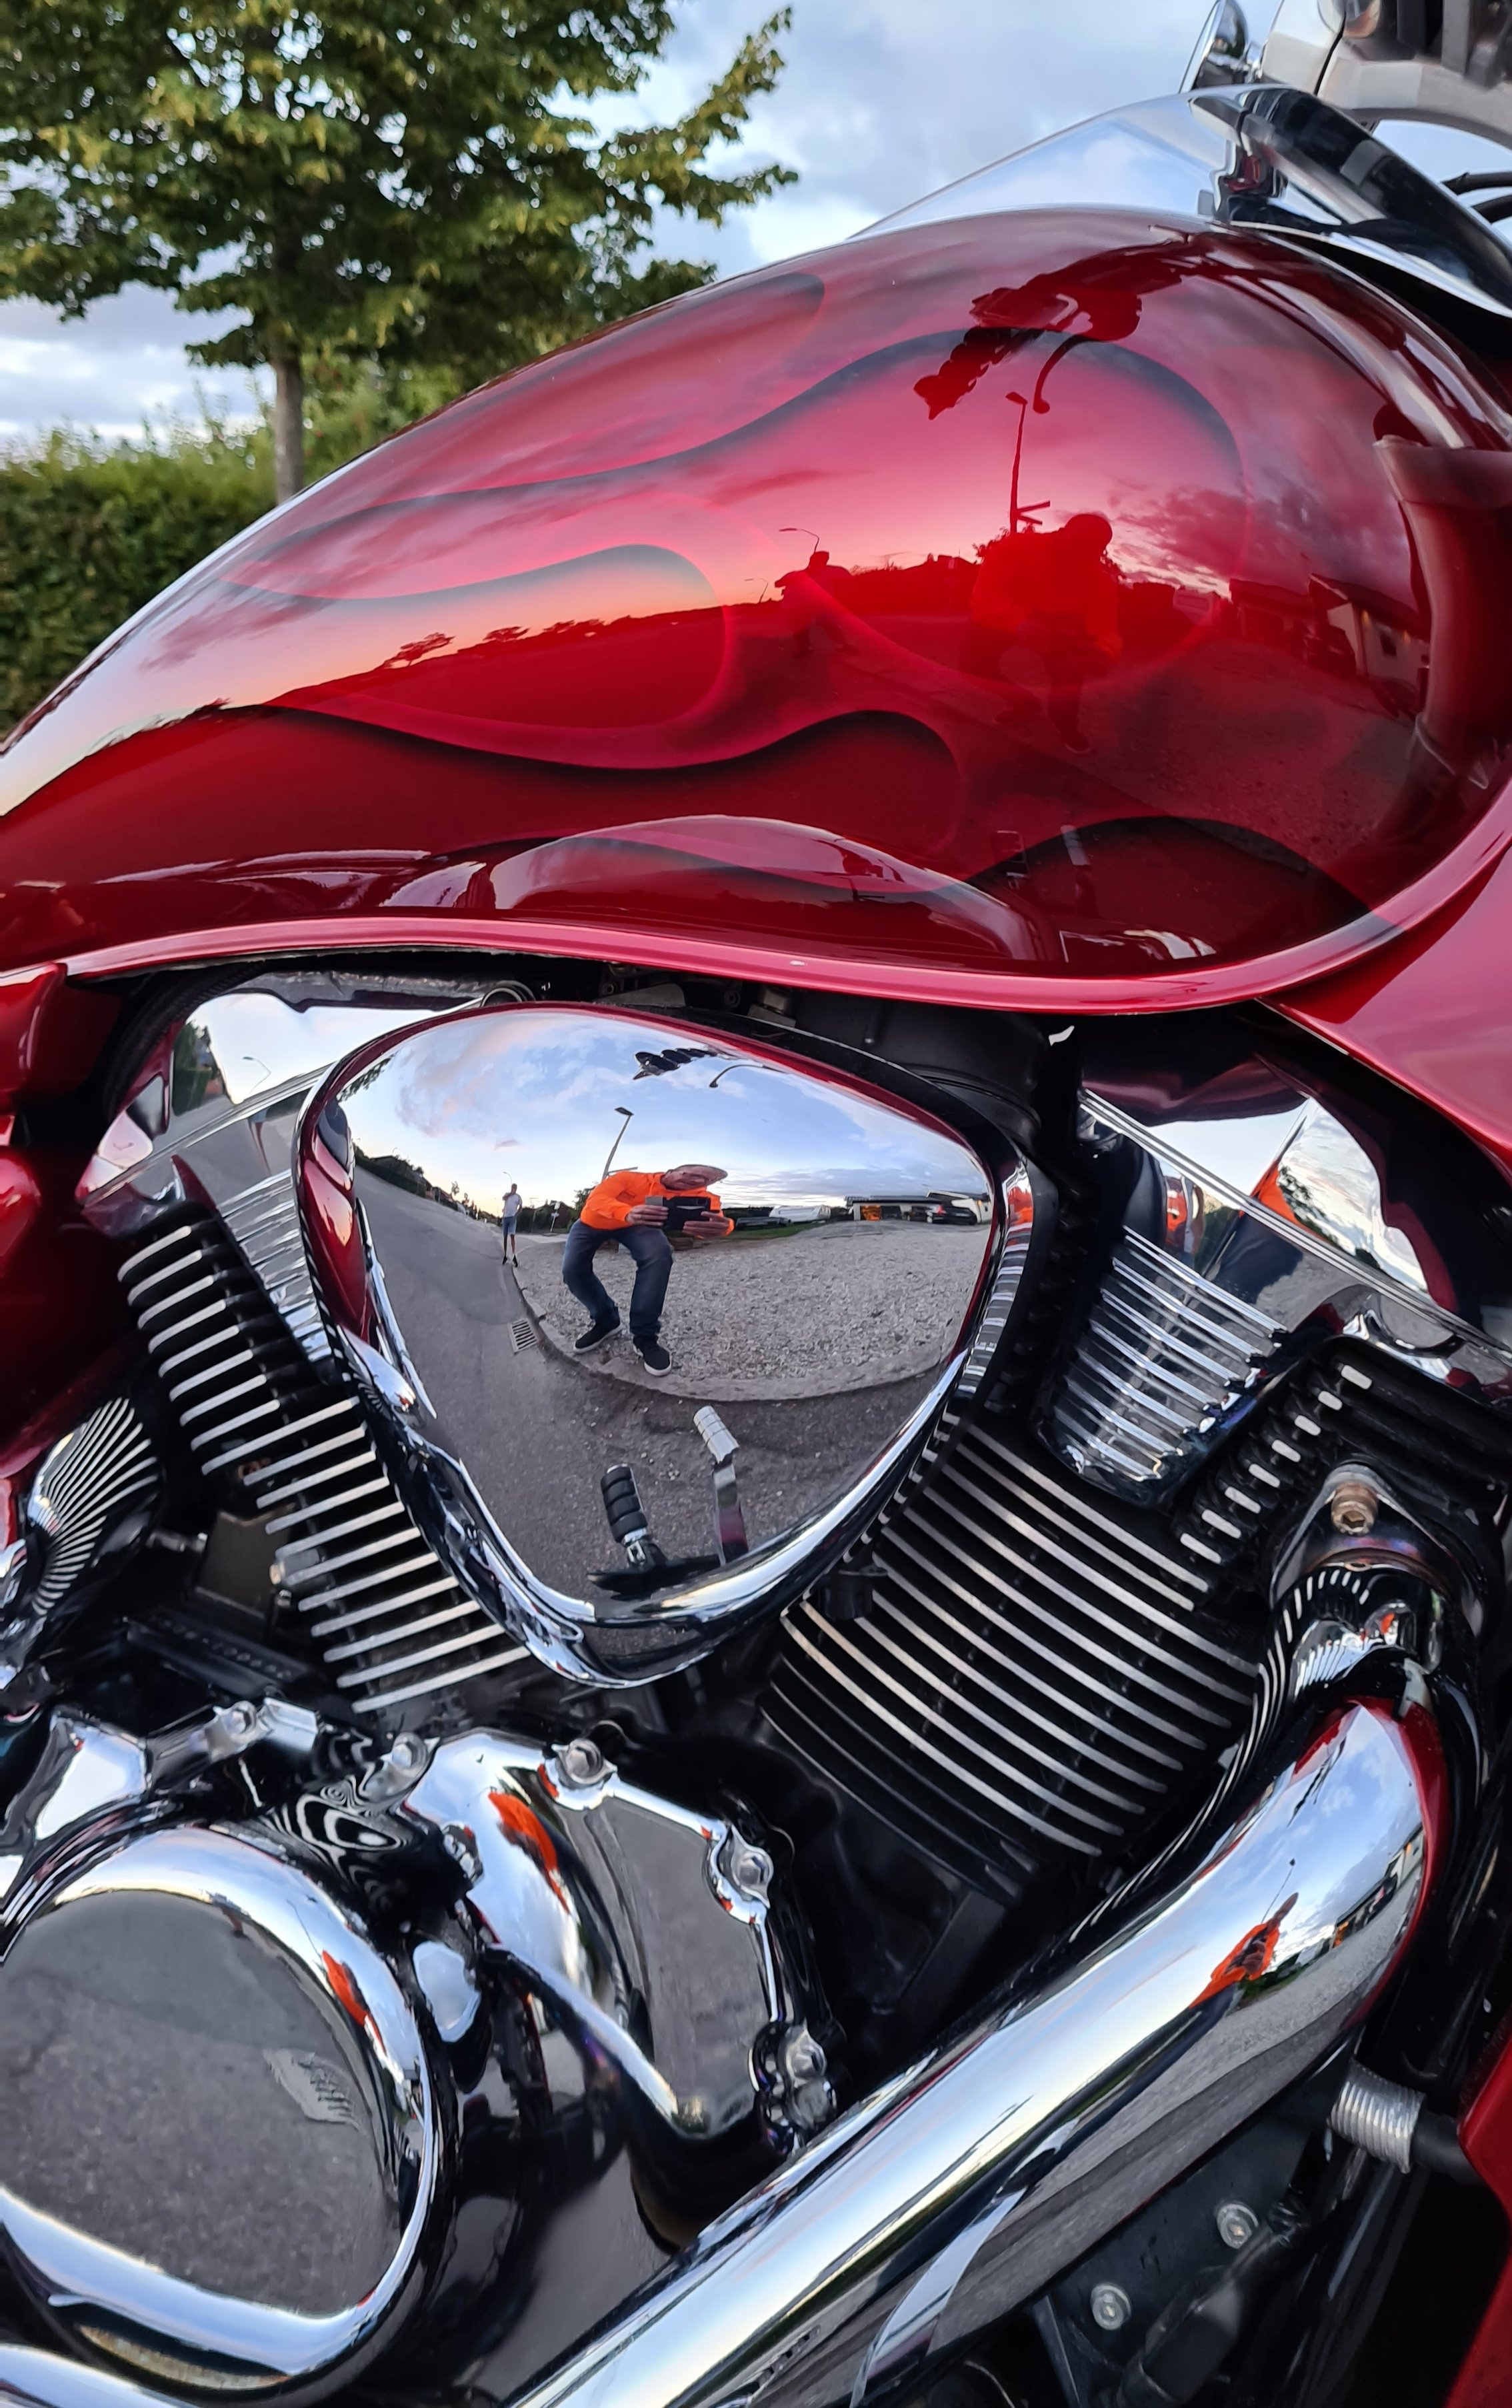 Suzuki Intruder m1800r red candy ghost classic flames 8